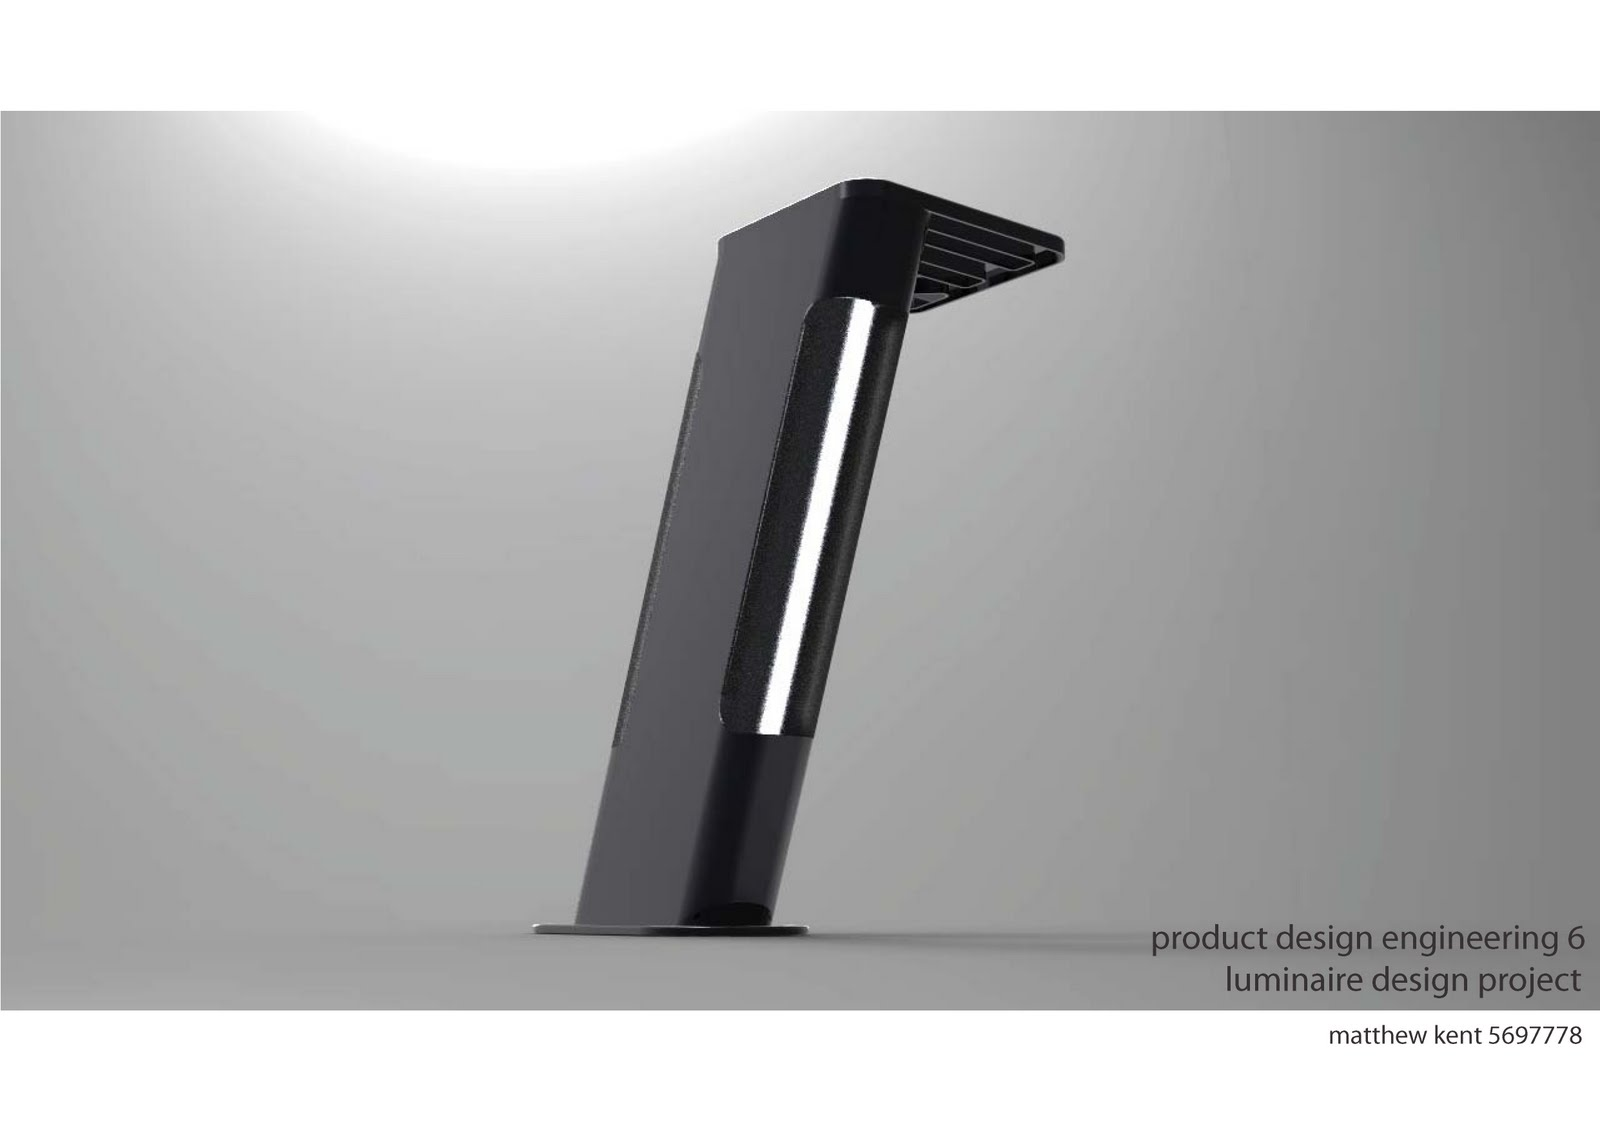 matt kent final concept luminaire design. Black Bedroom Furniture Sets. Home Design Ideas